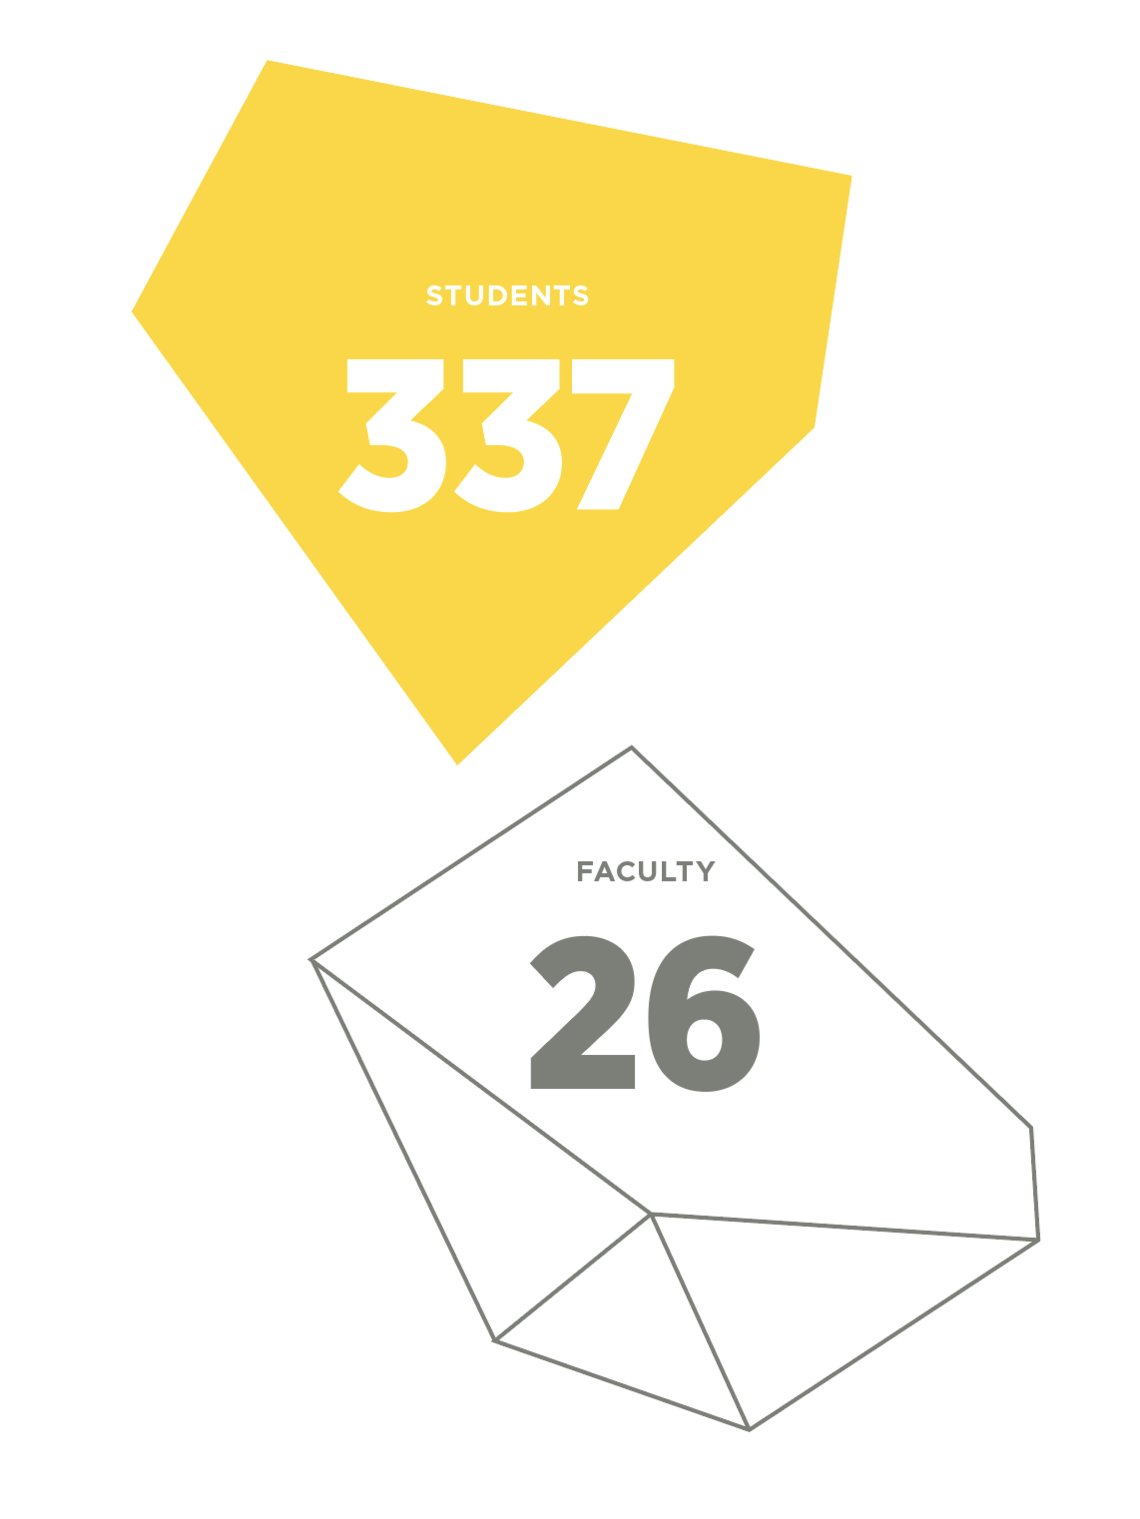 SAPL Student and faculty numbers